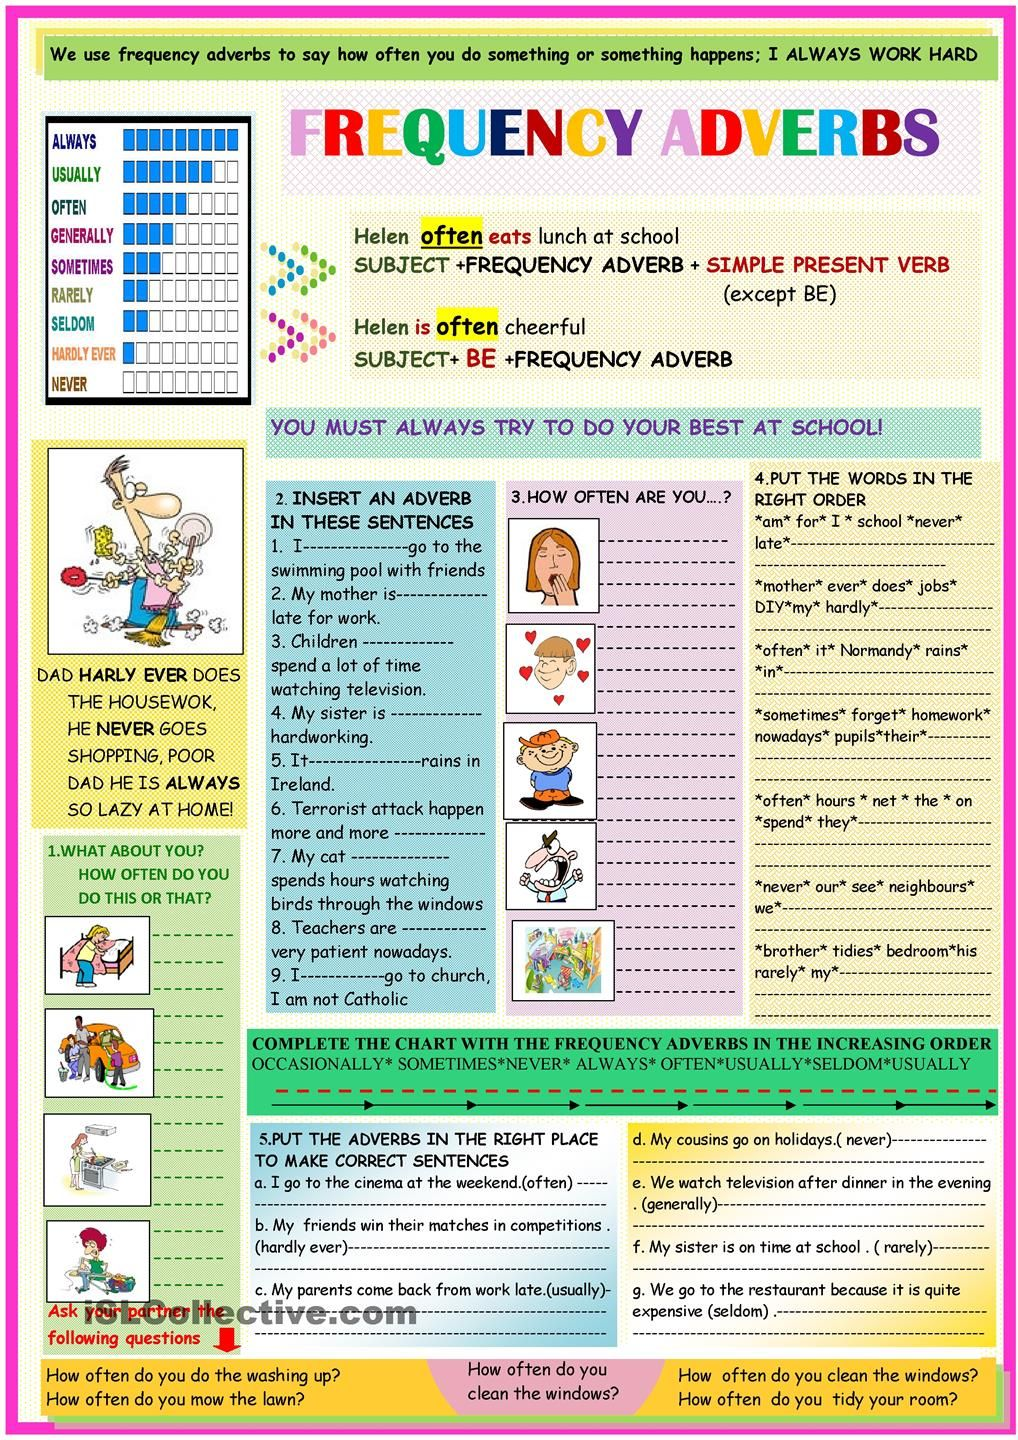 Frequency adverbs | Worksheet | Pinterest | Adverbs, English and ...